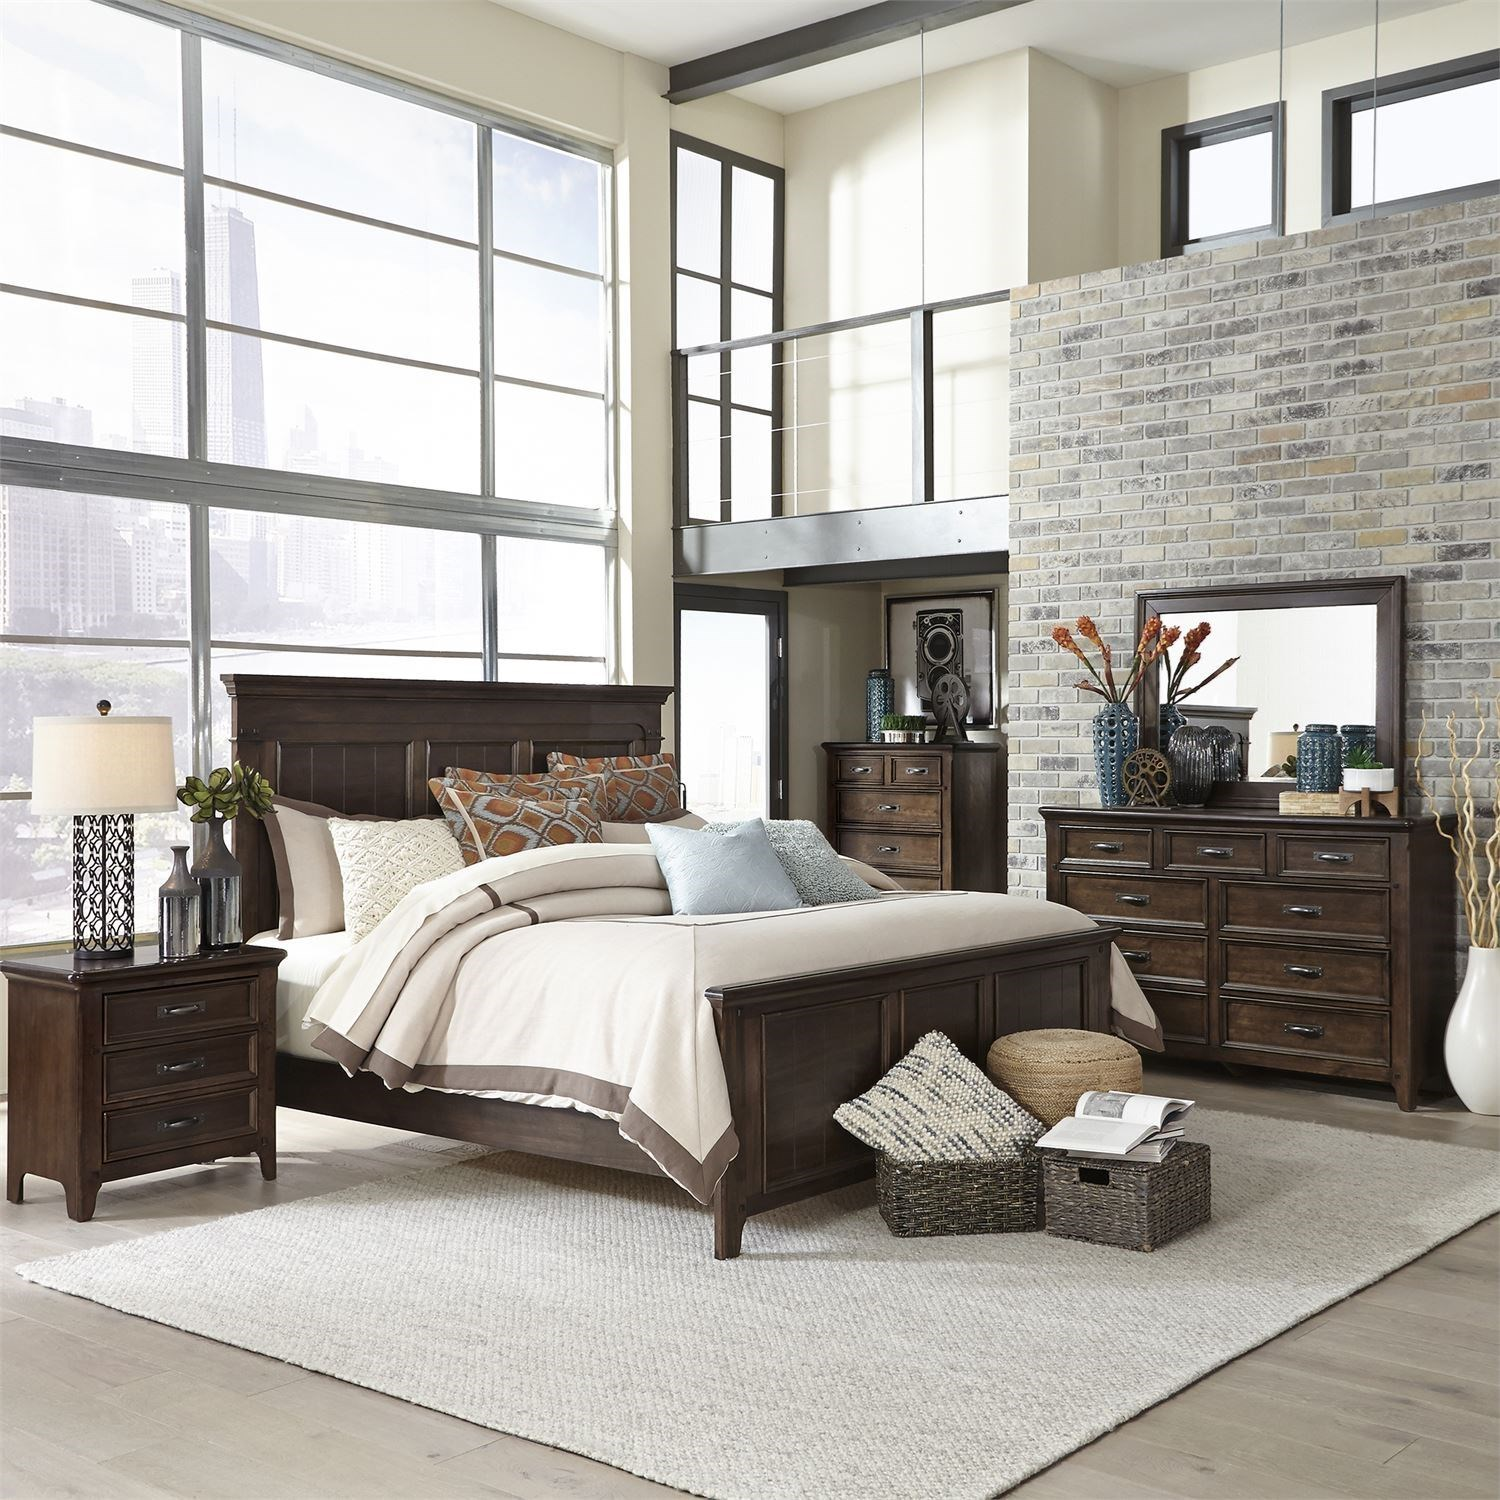 Saddlebrook Queen Bedroom Group by Liberty Furniture at Northeast Factory Direct